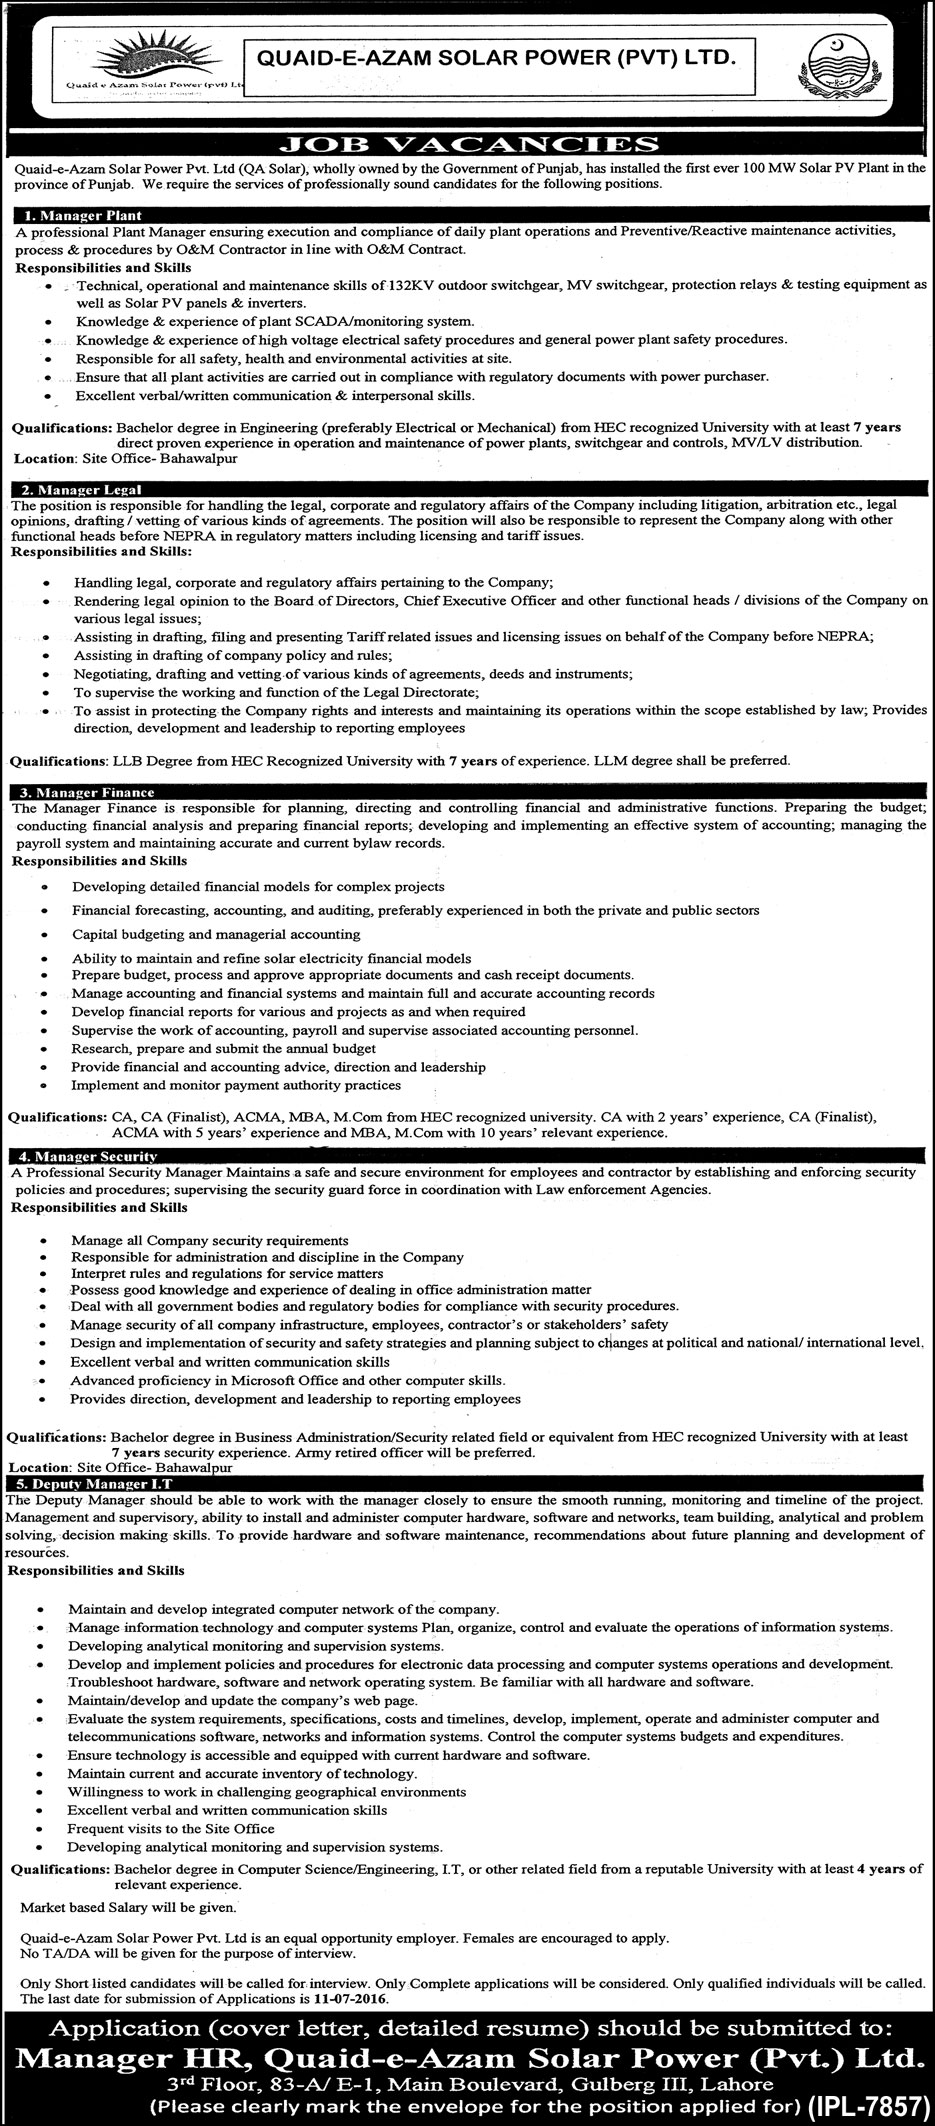 Quaid-e-Azam Solar Power Jobs